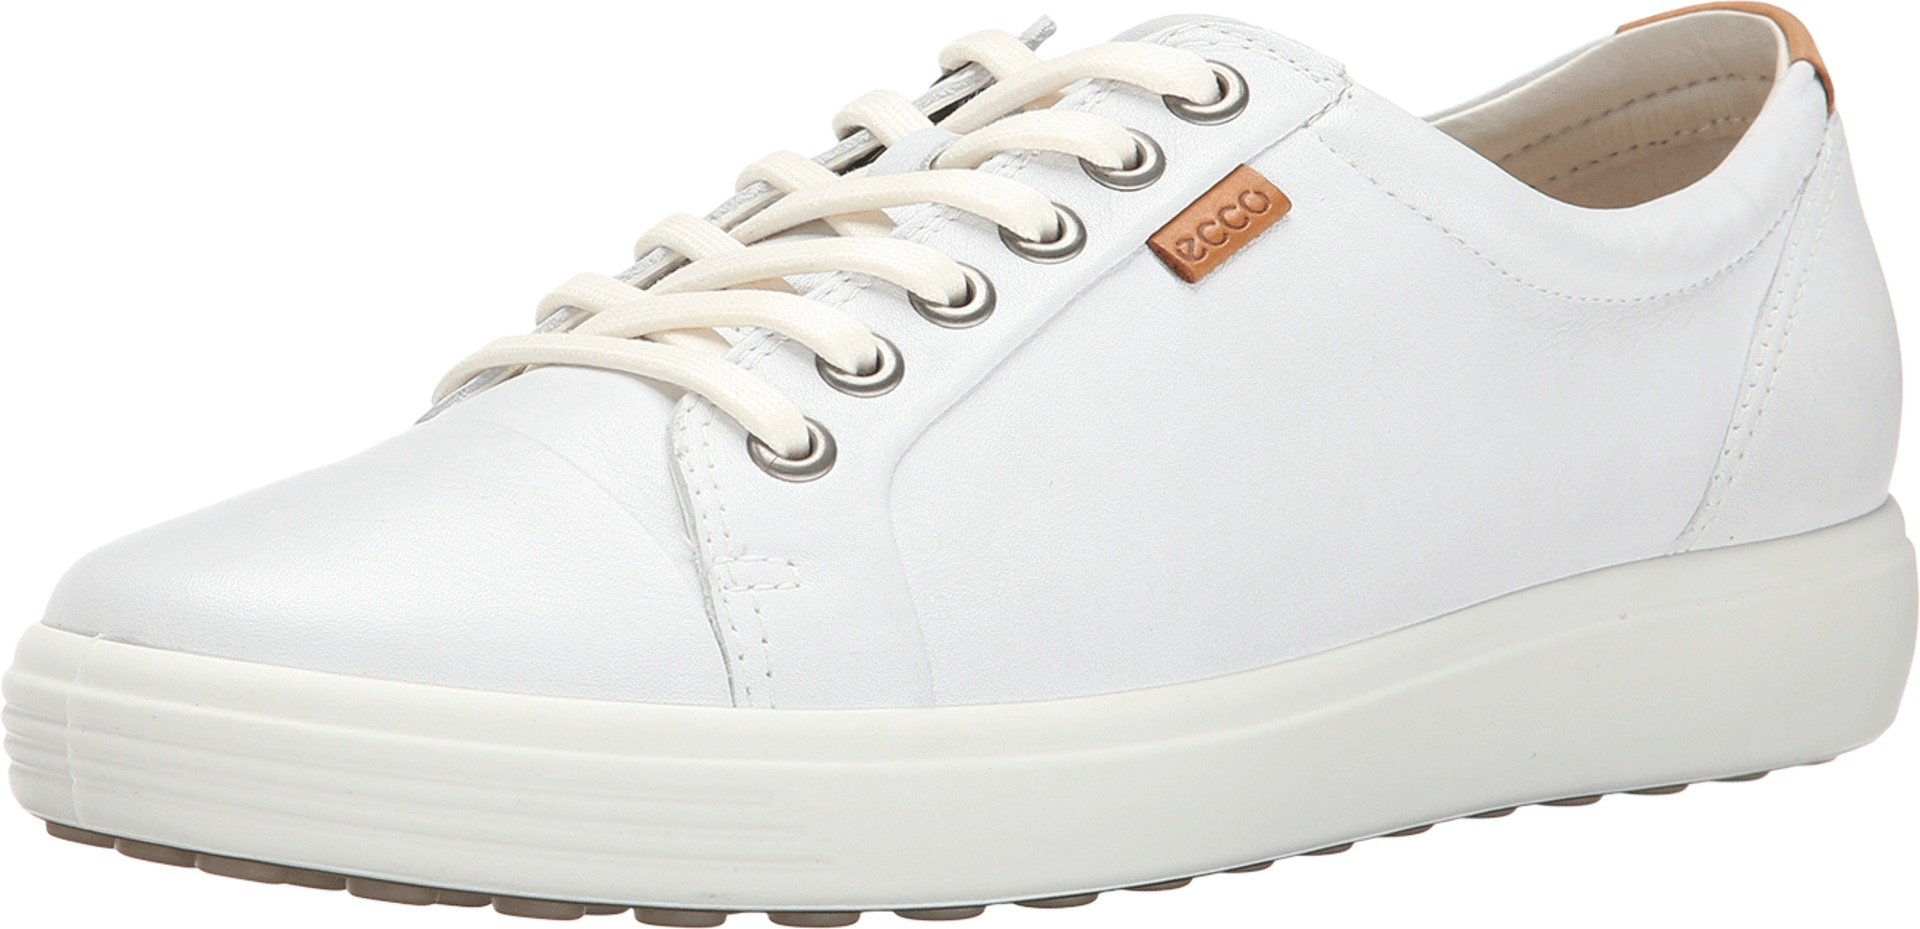 ECCO Footwear Womens Soft VII Fashion Sneaker, White, 37 EU/6-6.5 M US